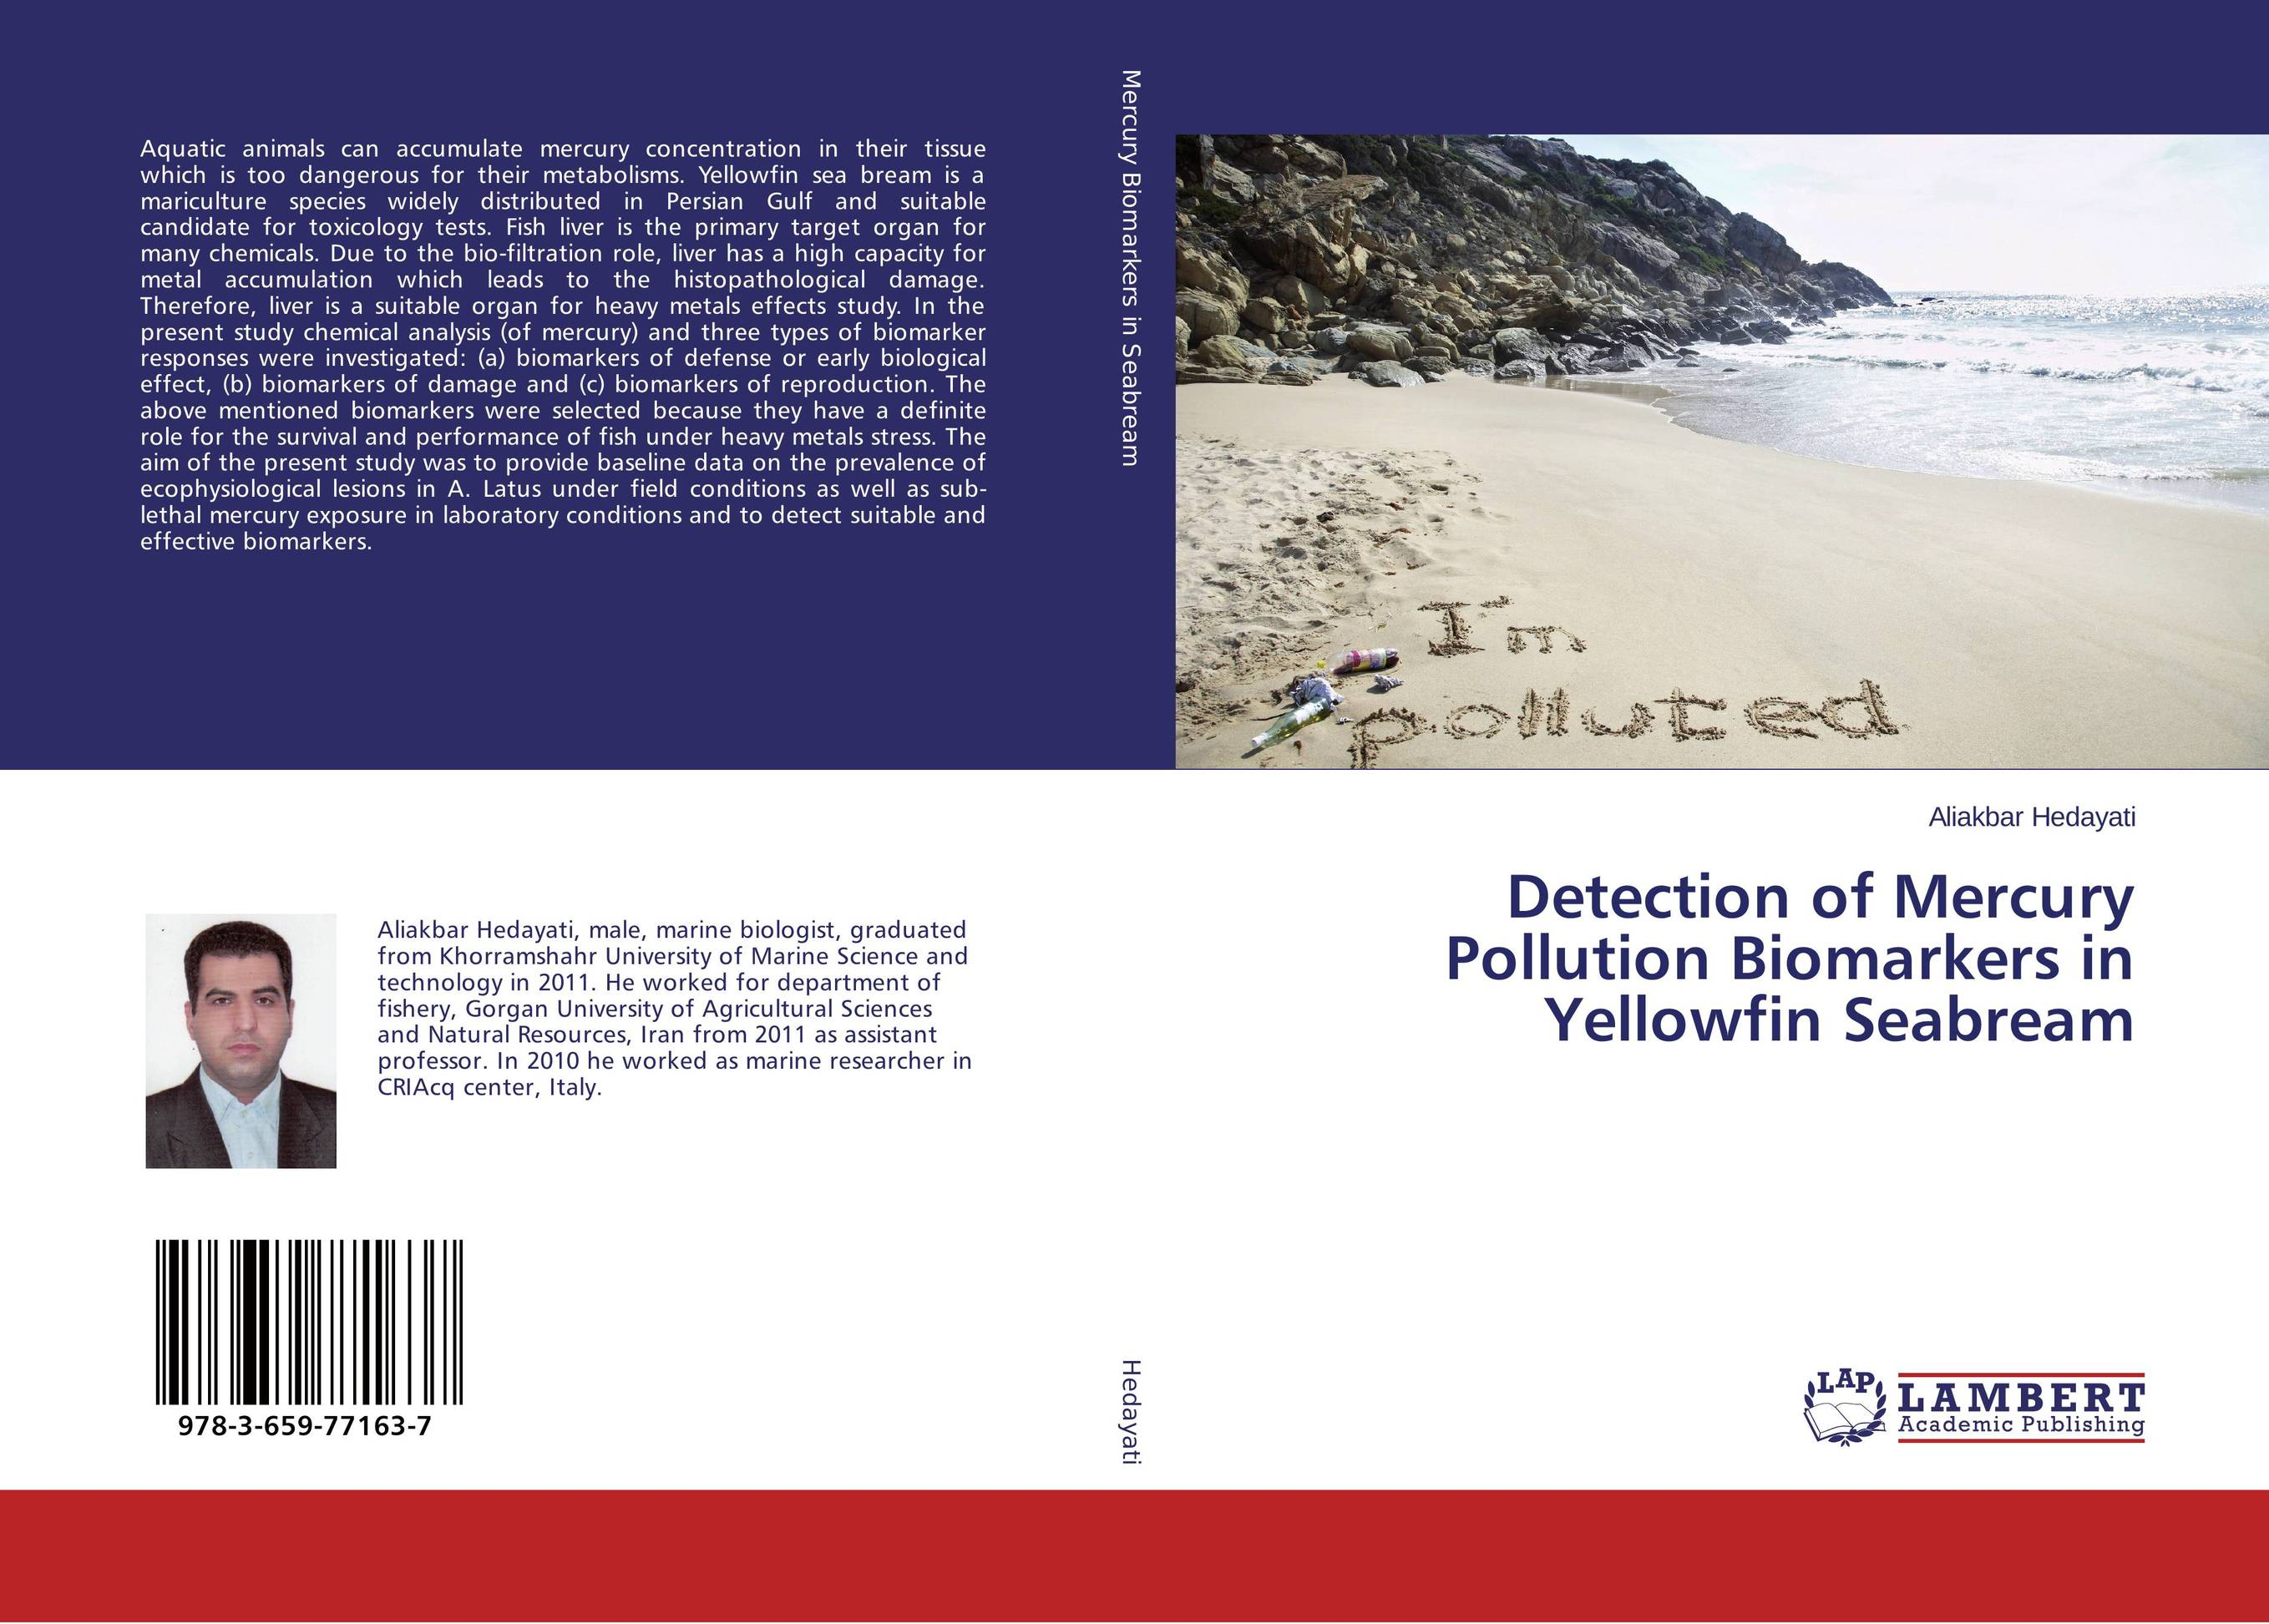 Detection of Mercury Pollution Biomarkers in Yellowfin Seabream biomarkers in ulcerative colitis